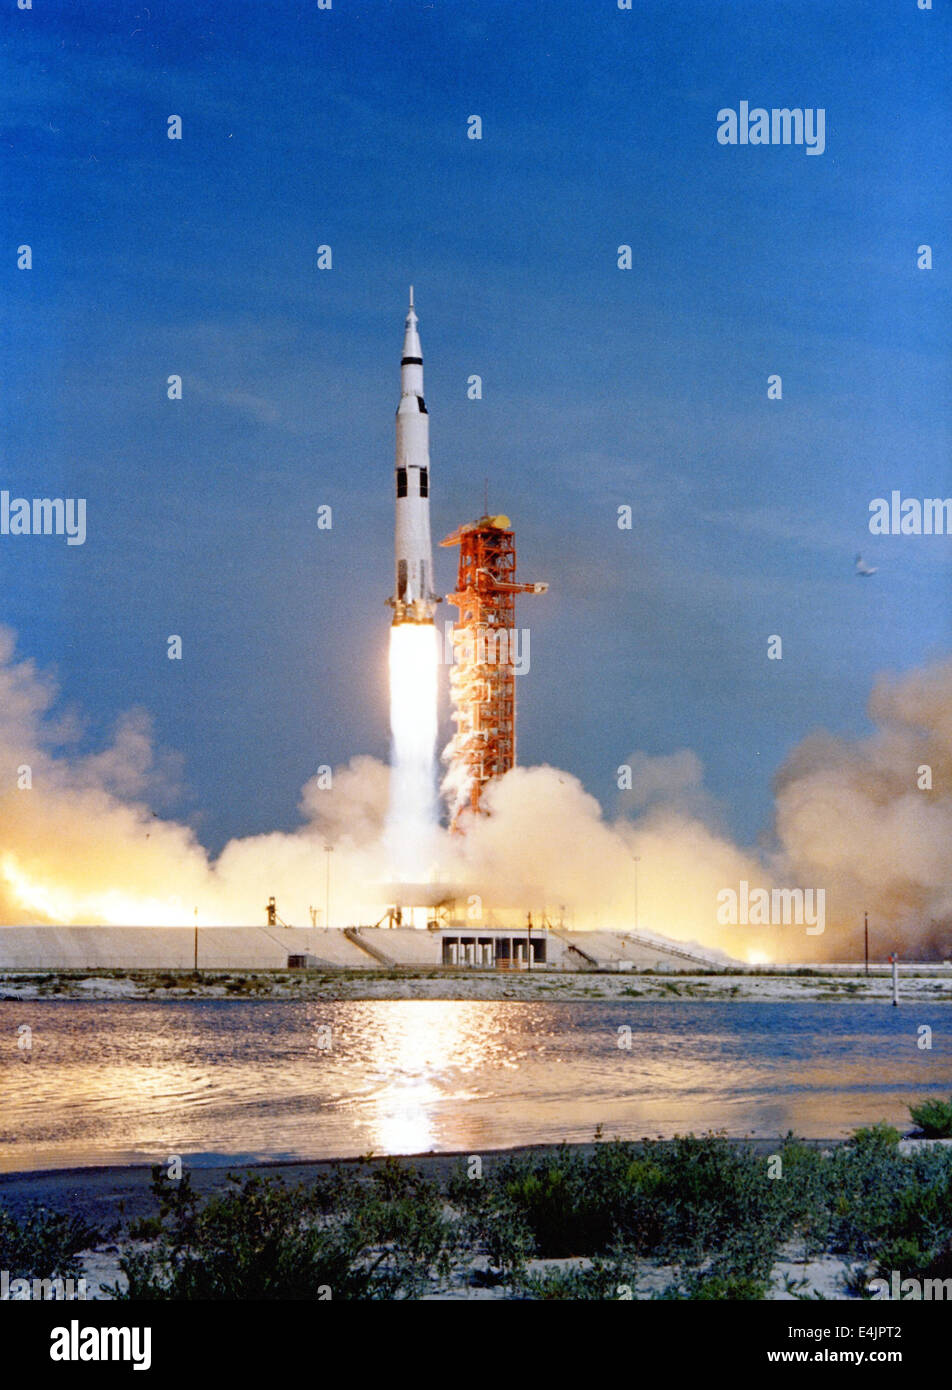 medium-distance view of Apollo 11 liftoff - Stock Image